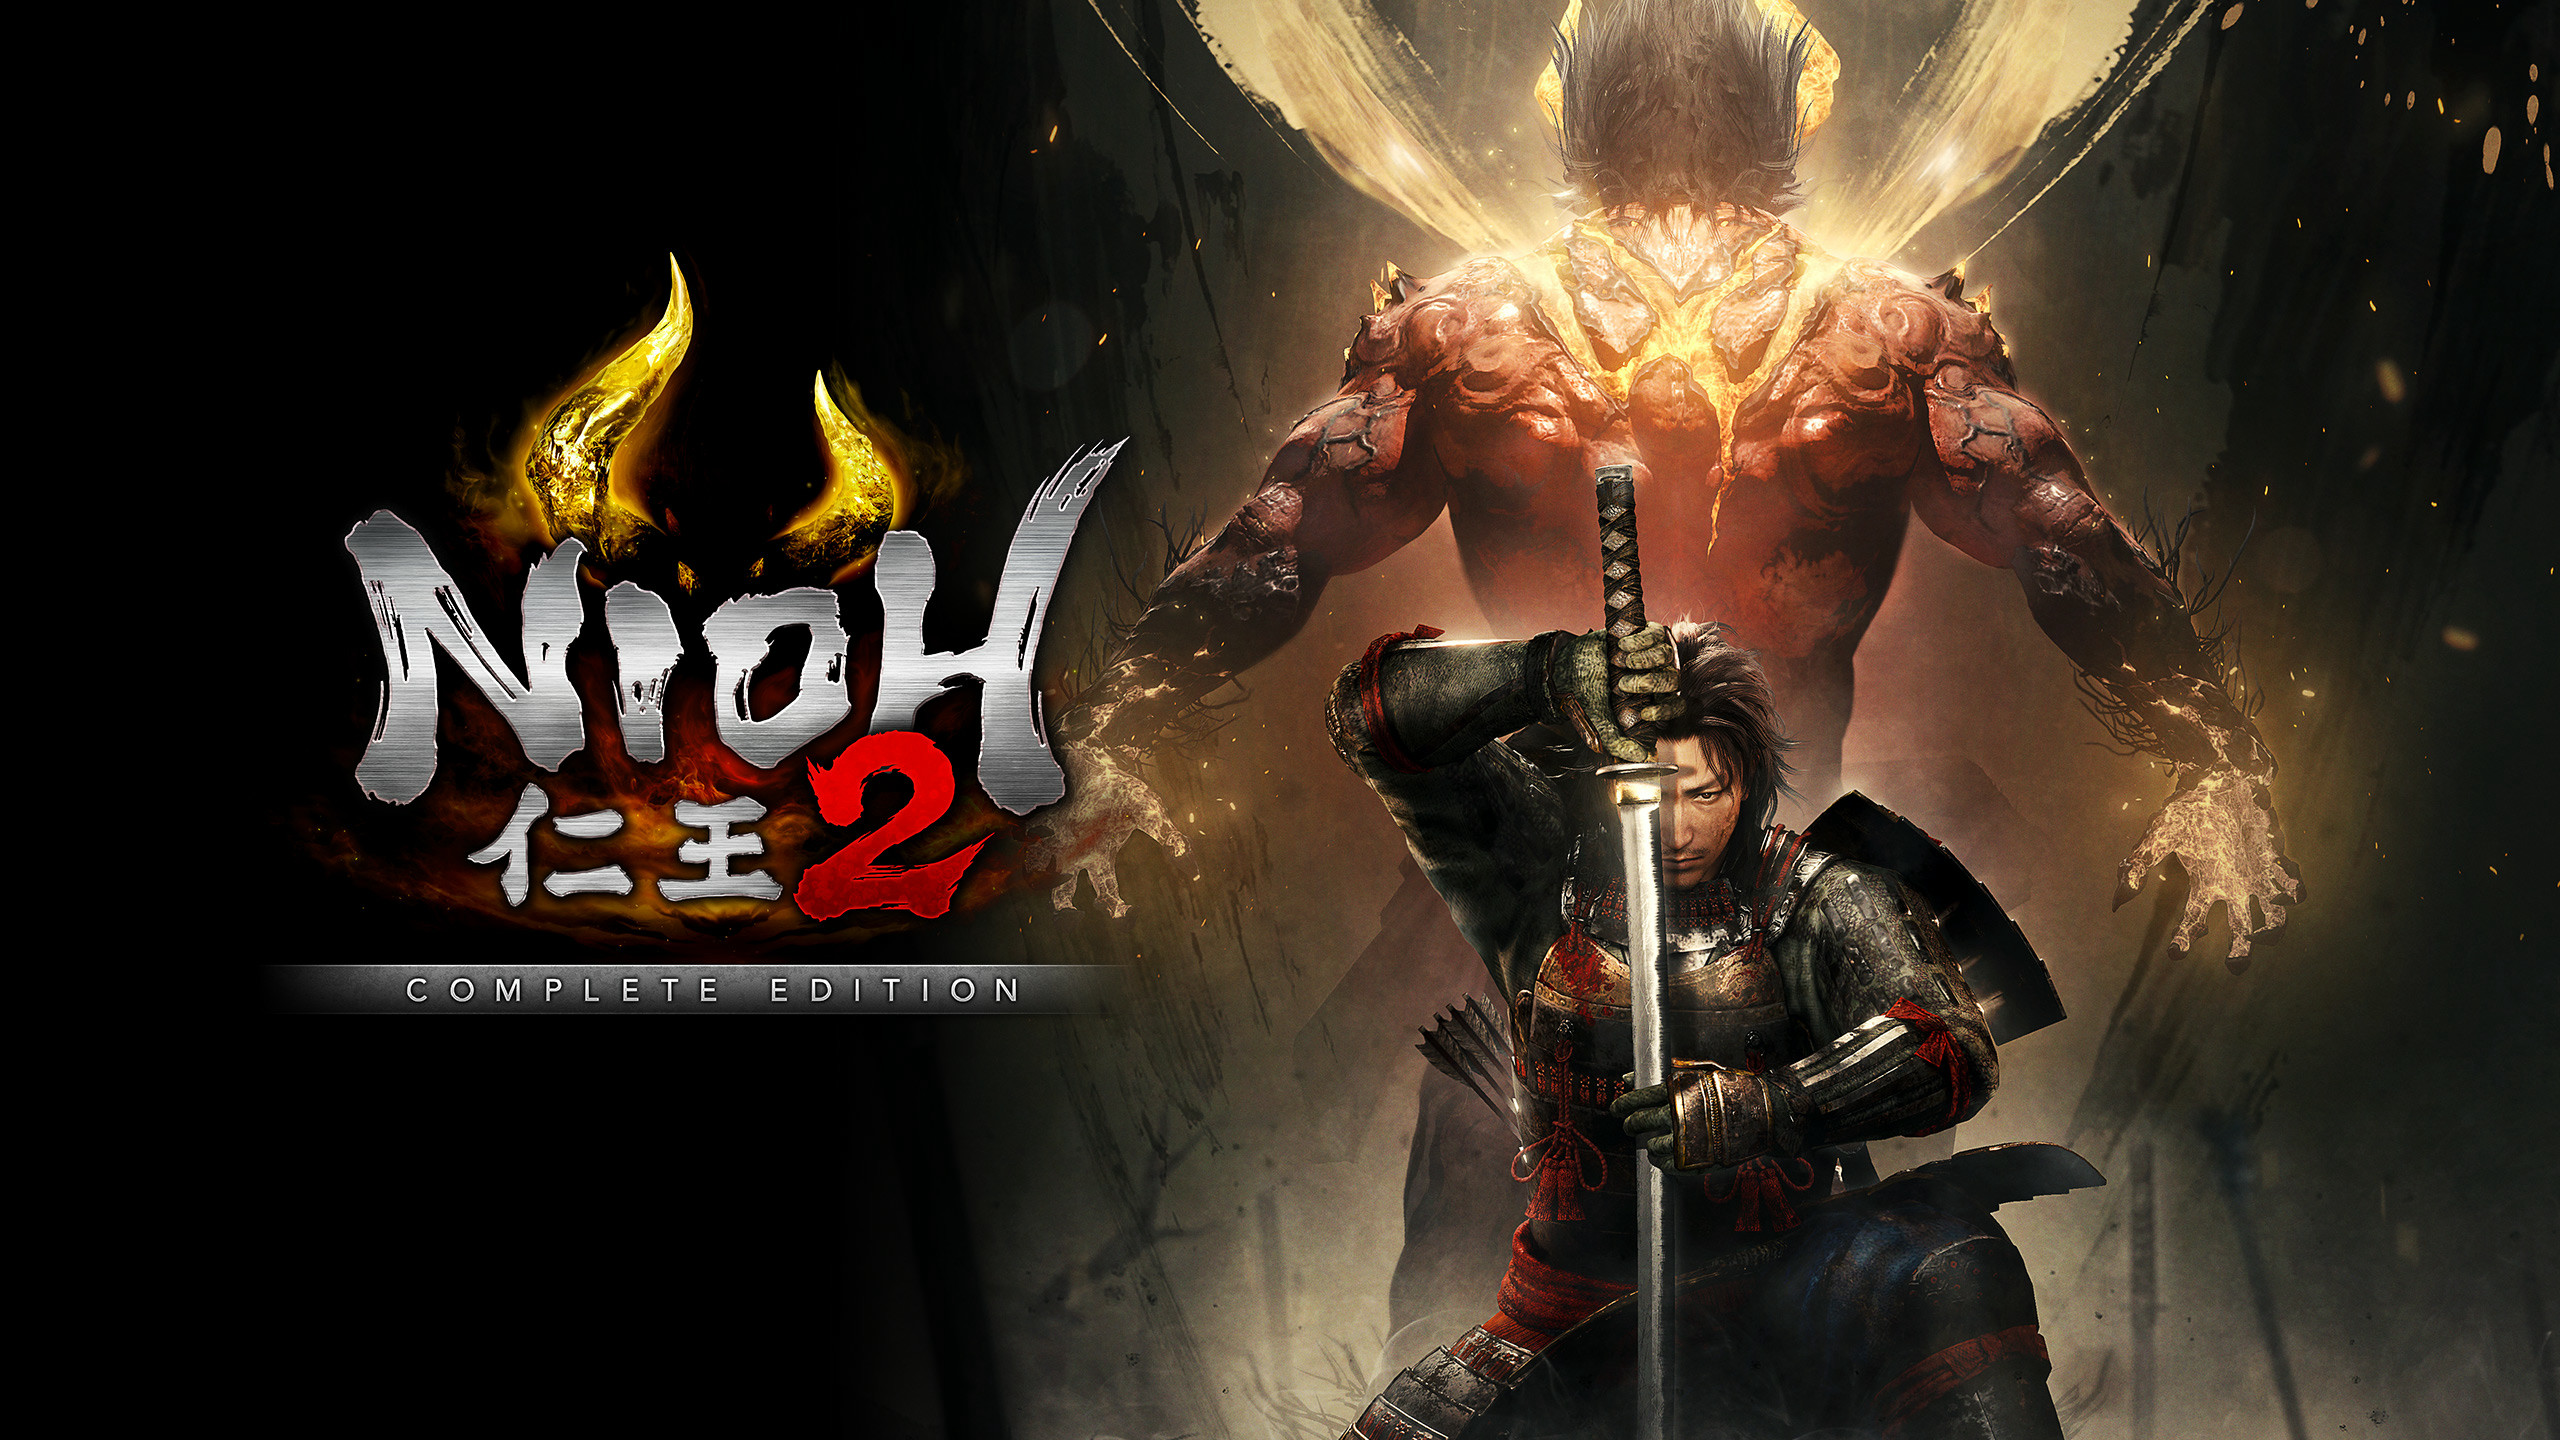 Nioh 2 – The Complete Edition | Download and Buy Today - Epic Games Store